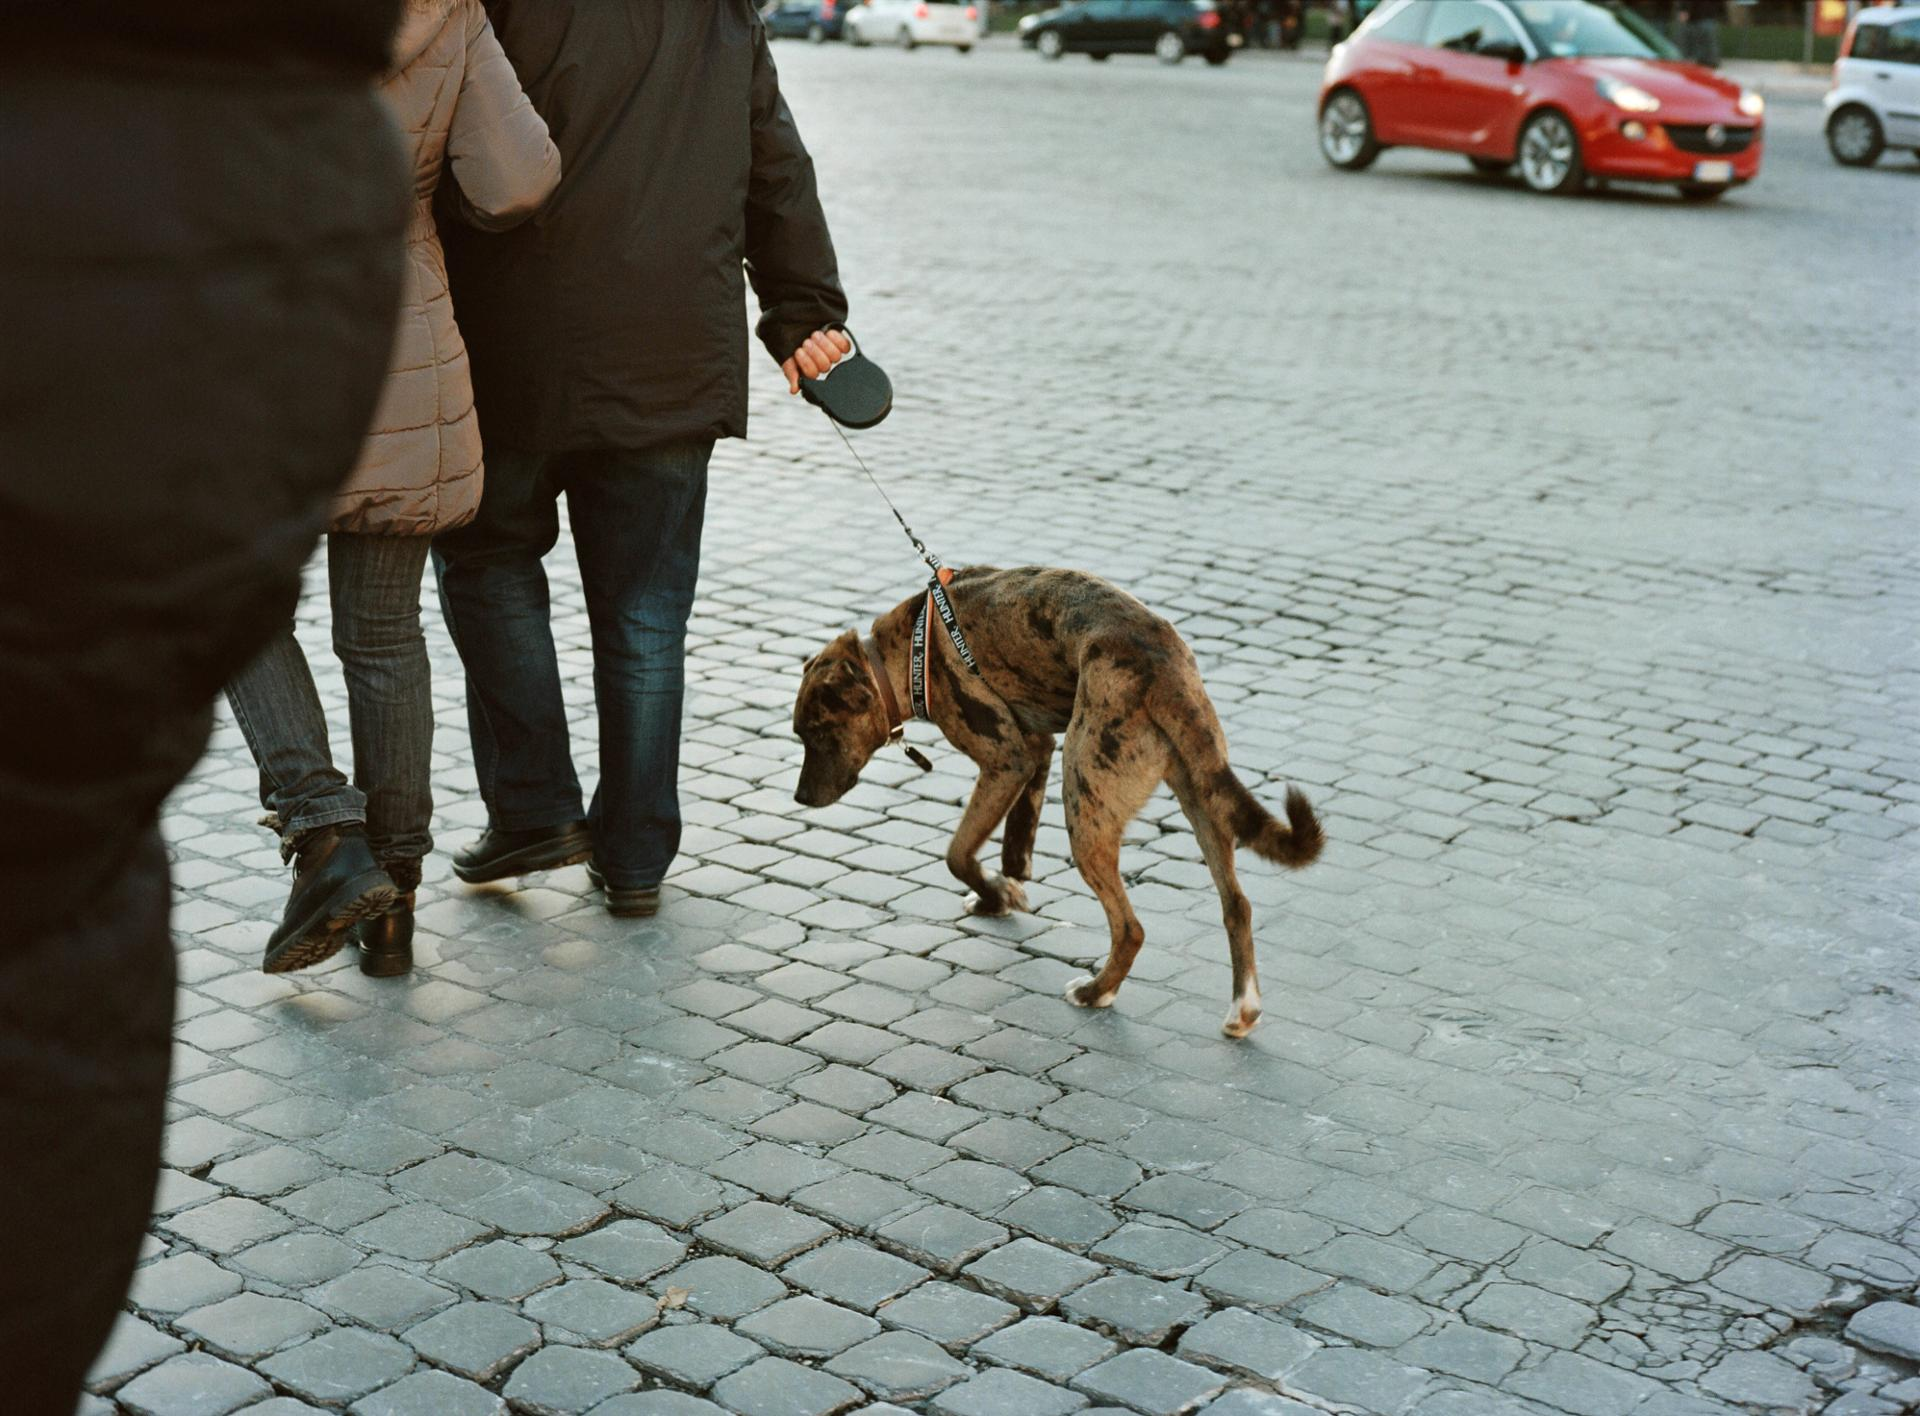 Not in the mood for walking, Roma.